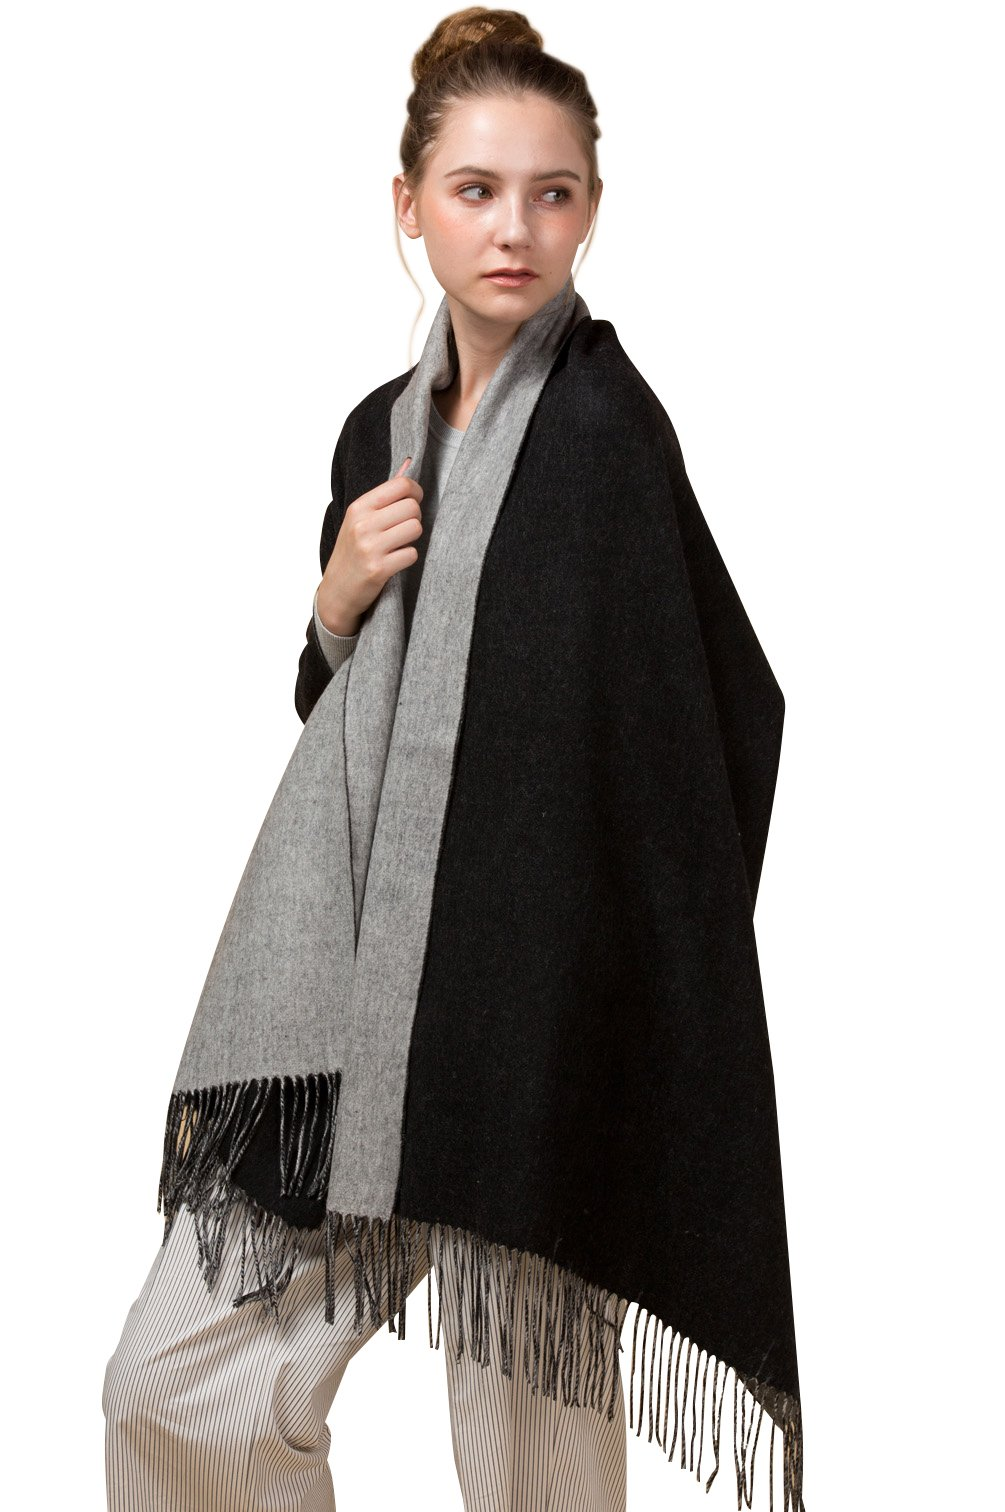 Novawo Extra Large Double Color Soft Cashmere and Wool Shawl Wrap for Women